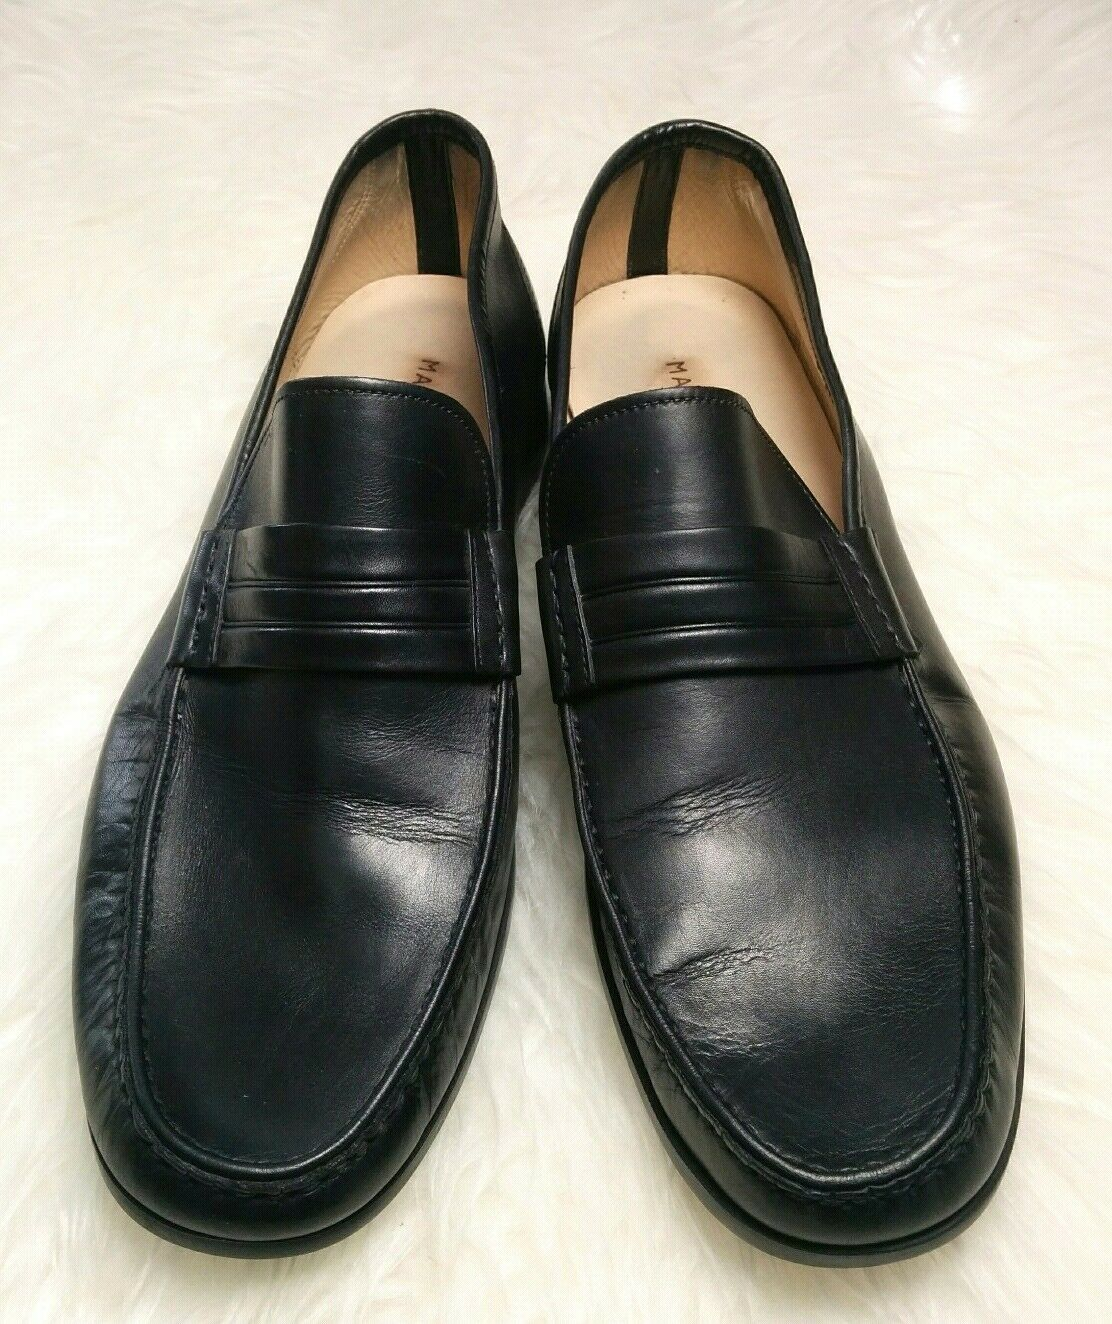 Magnanni Men's Black Penny Loafers Slip On Extra Light Made in Spain shoes 10 M